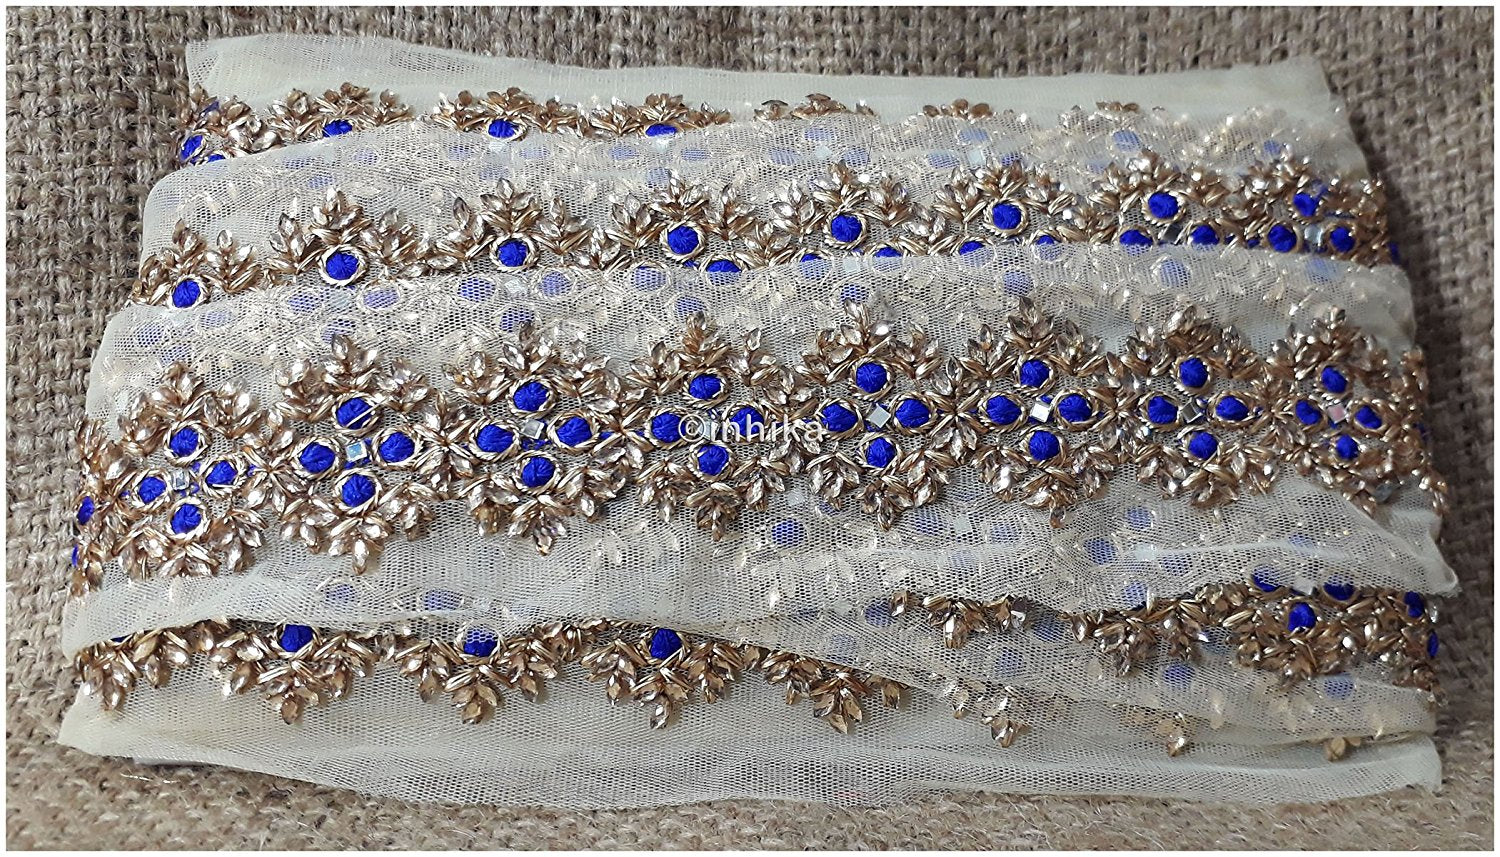 lace trim fabric beaded bridal lace fabric online by the yard Blue, Embroidery, 3 Inch Wide material Net, Mesh, Tulle